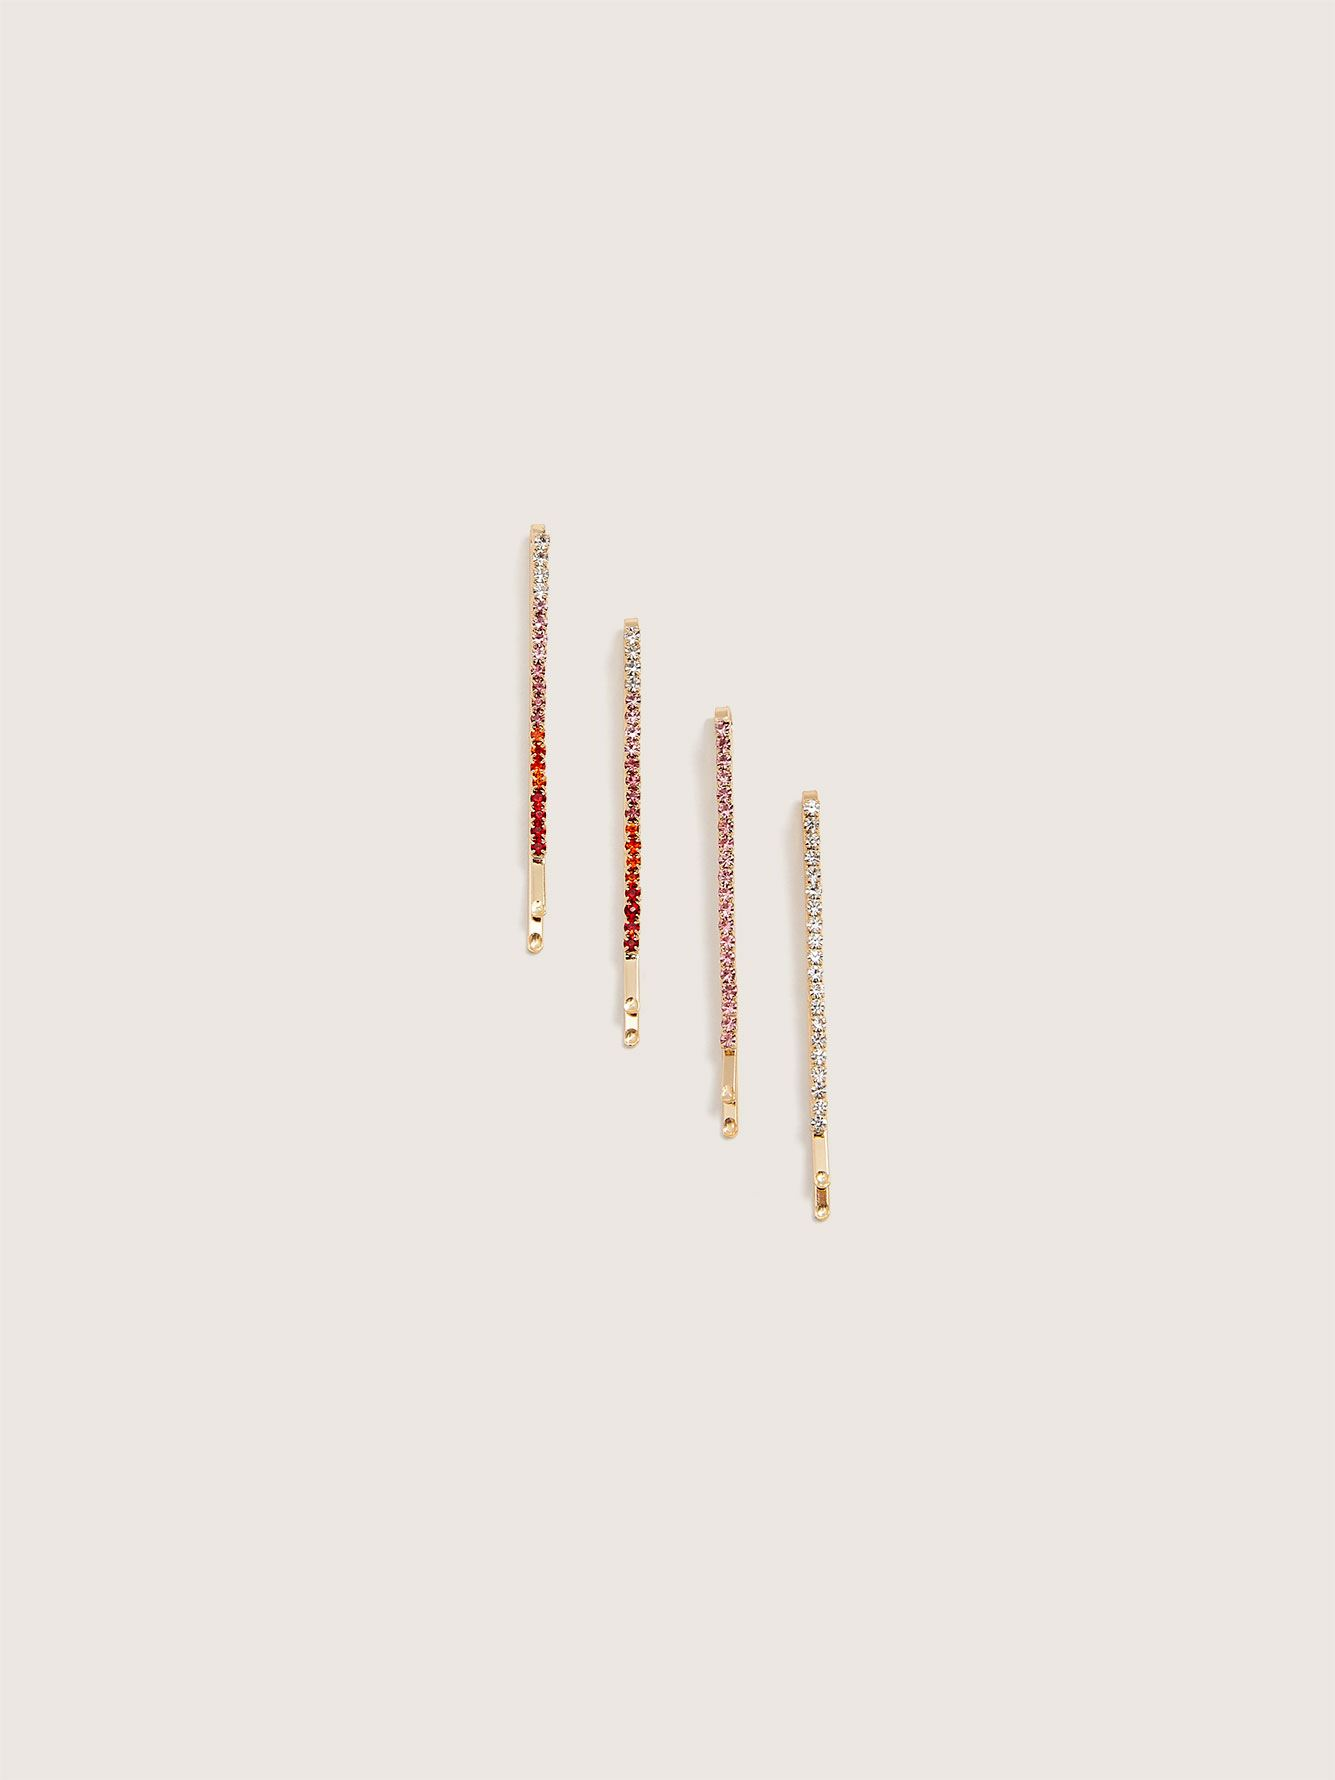 Coloured Rhinestone Hair Pins, 4-Pack - Addition Elle